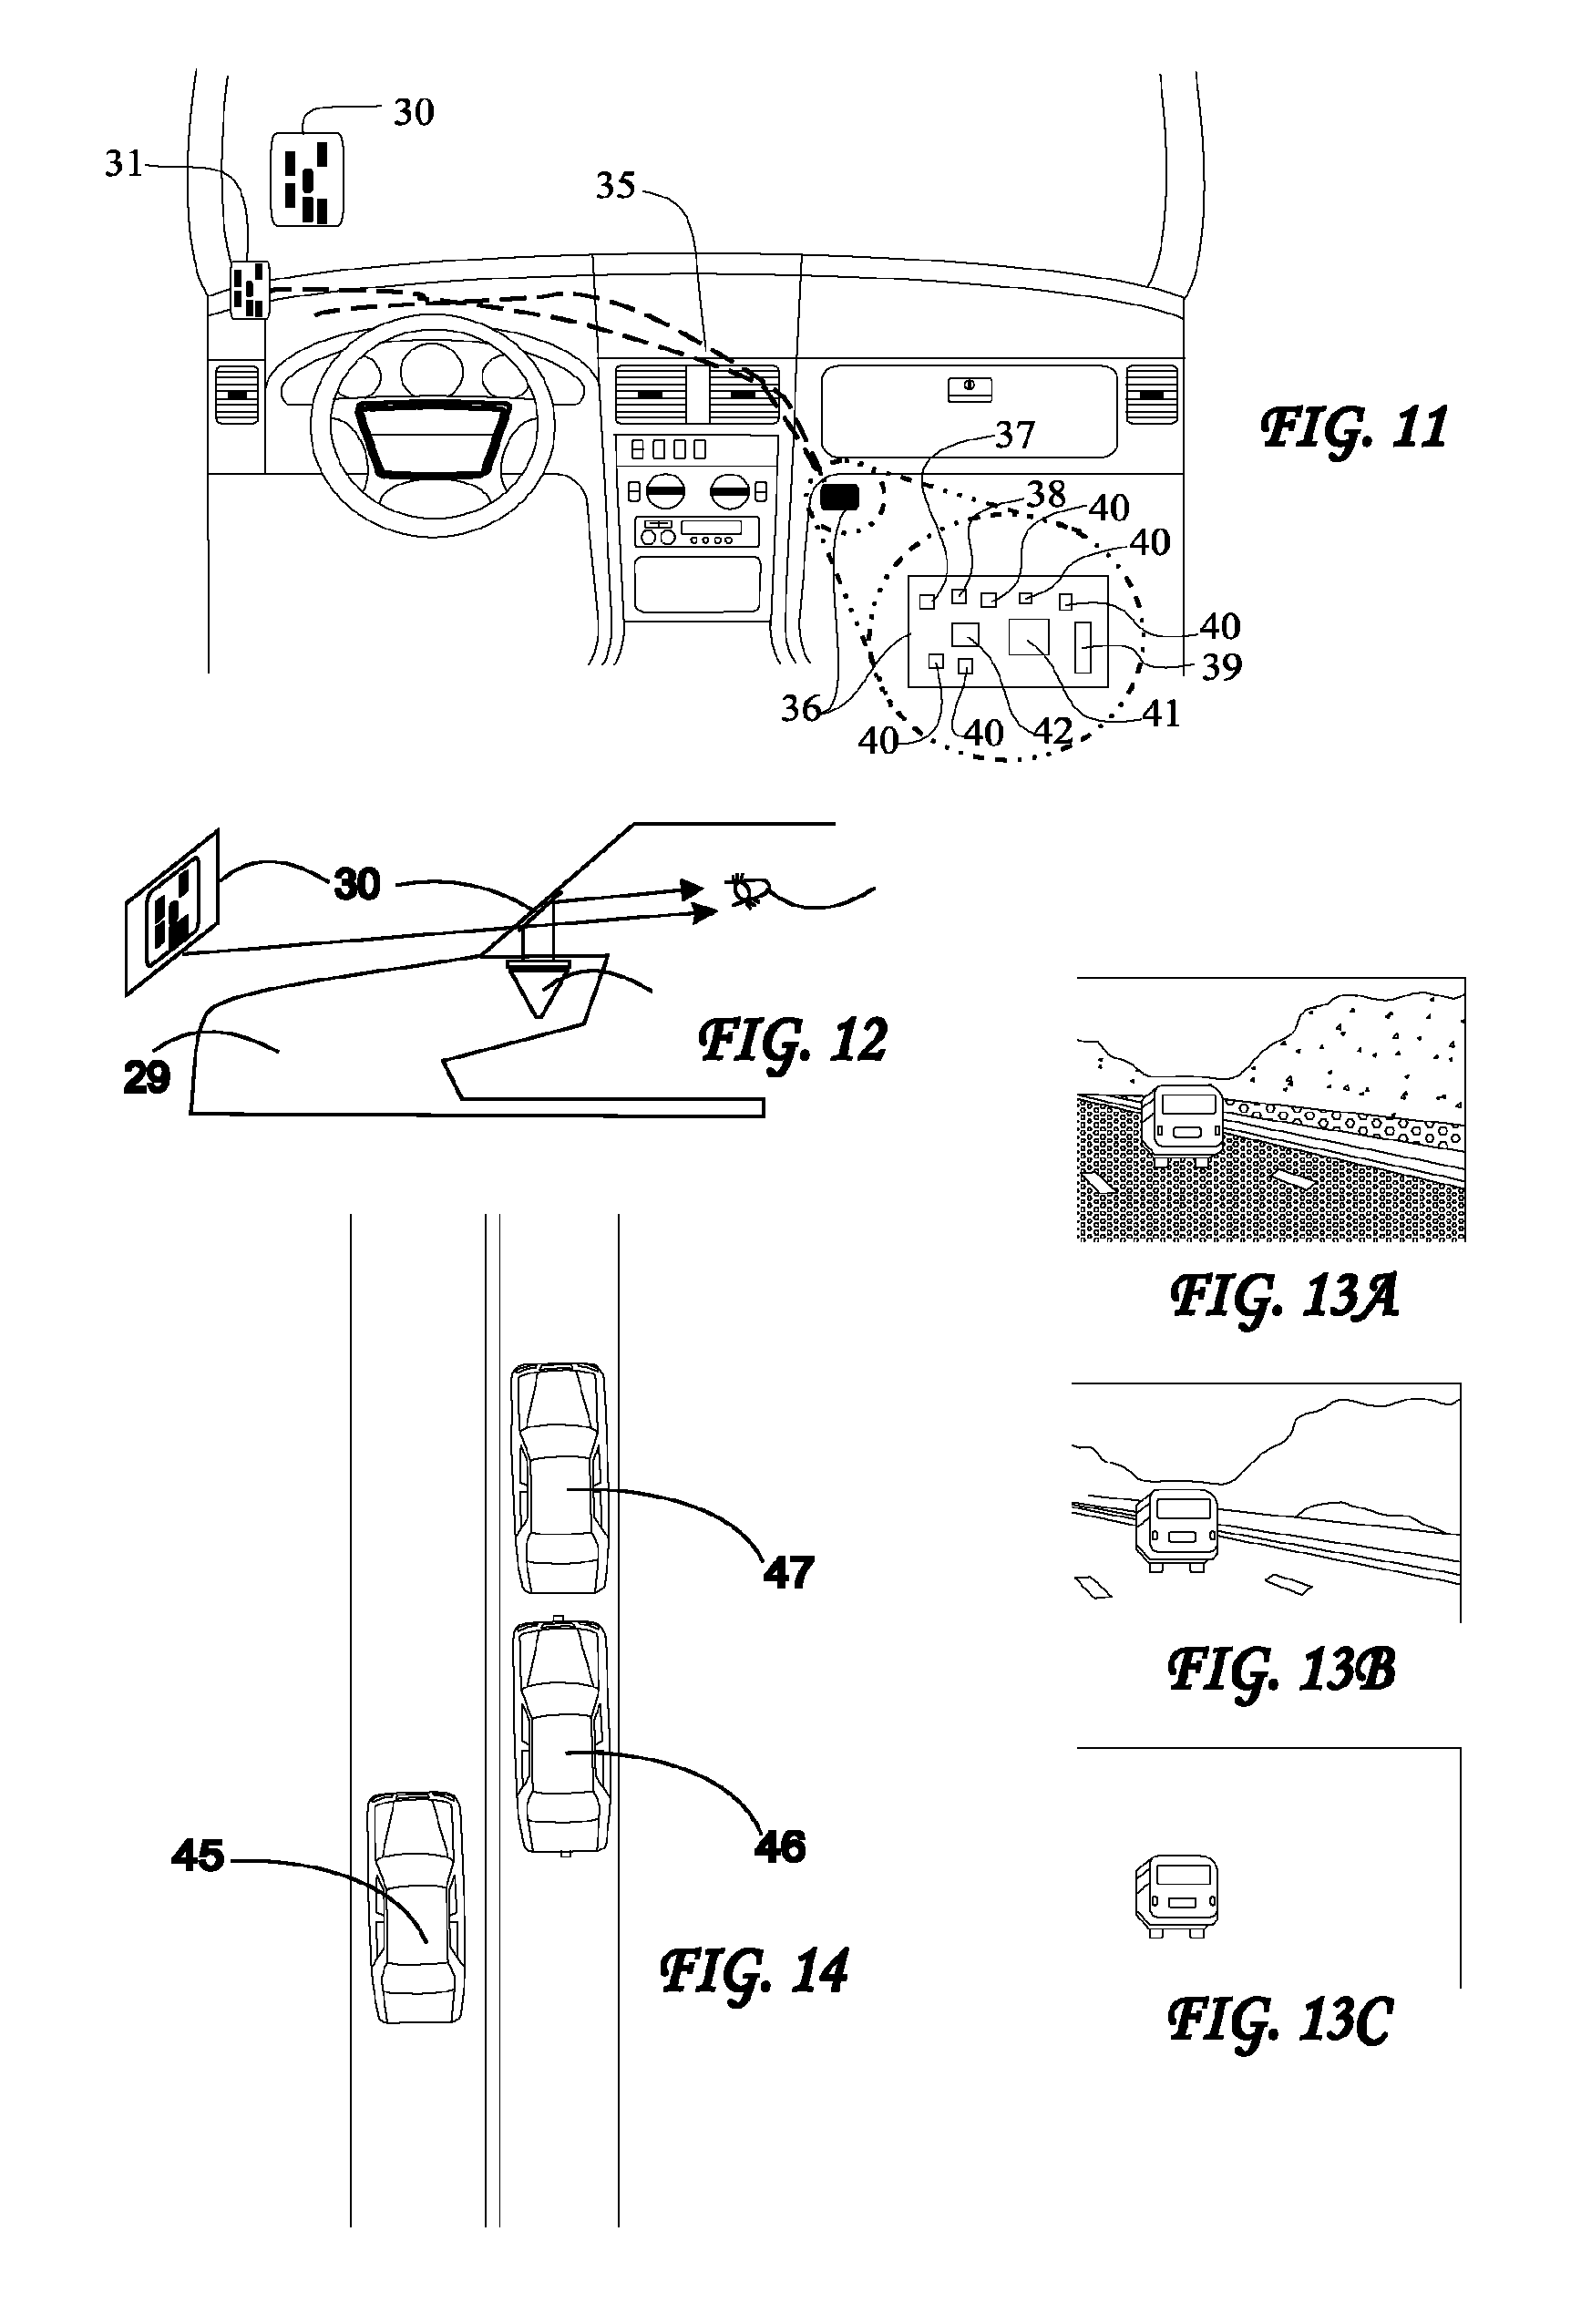 Patent Us 7783403 B2 Block Diagram Of Solar Powered Led Street Light With Auto Intensity